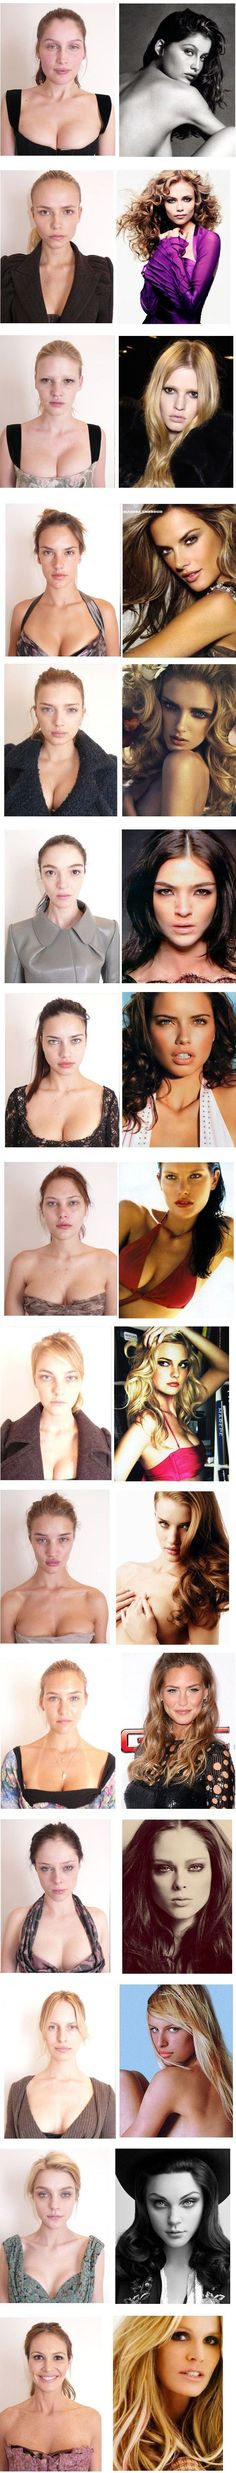 VICTORIA SECRET MODELS WITHOUT MAKEUP - Some of these I was thinking, there's no way that's the same person!